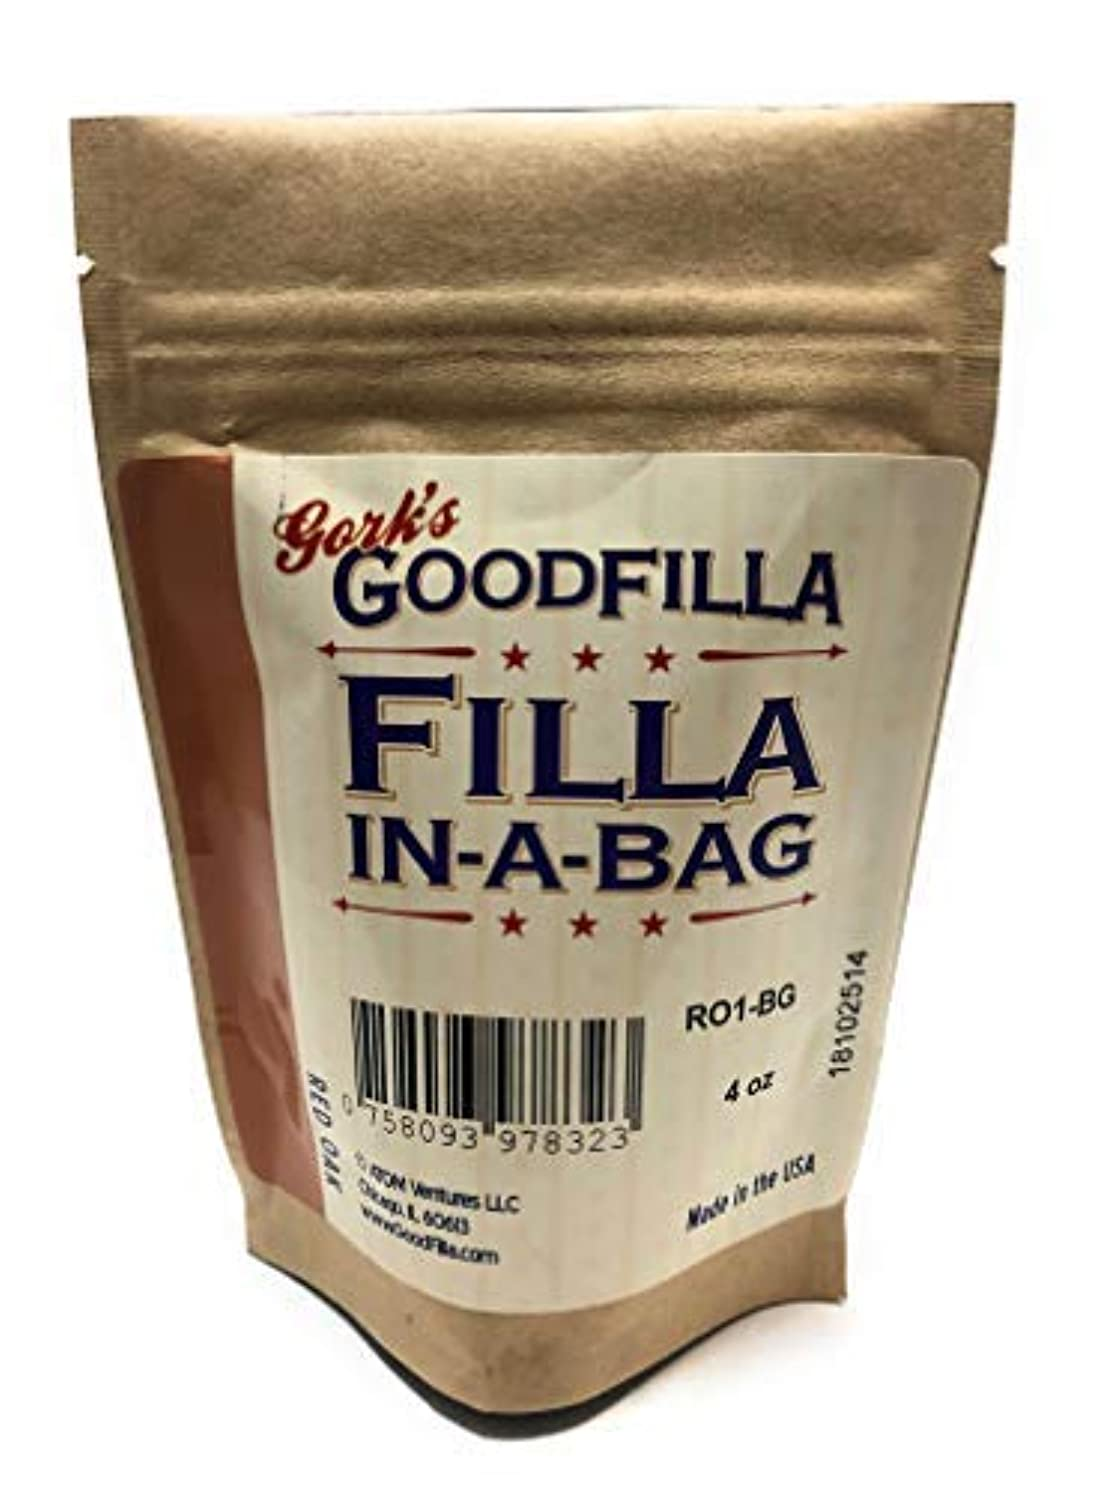 Wood Filler & Putty Powder - Innovative Formula - Filla-In-A-Bag - Red Oak - 4 oz By Goodfilla   Repairs, Finishes & Patches   Paintable, Stainable, Sandable & Quick Drying   Zero Waste